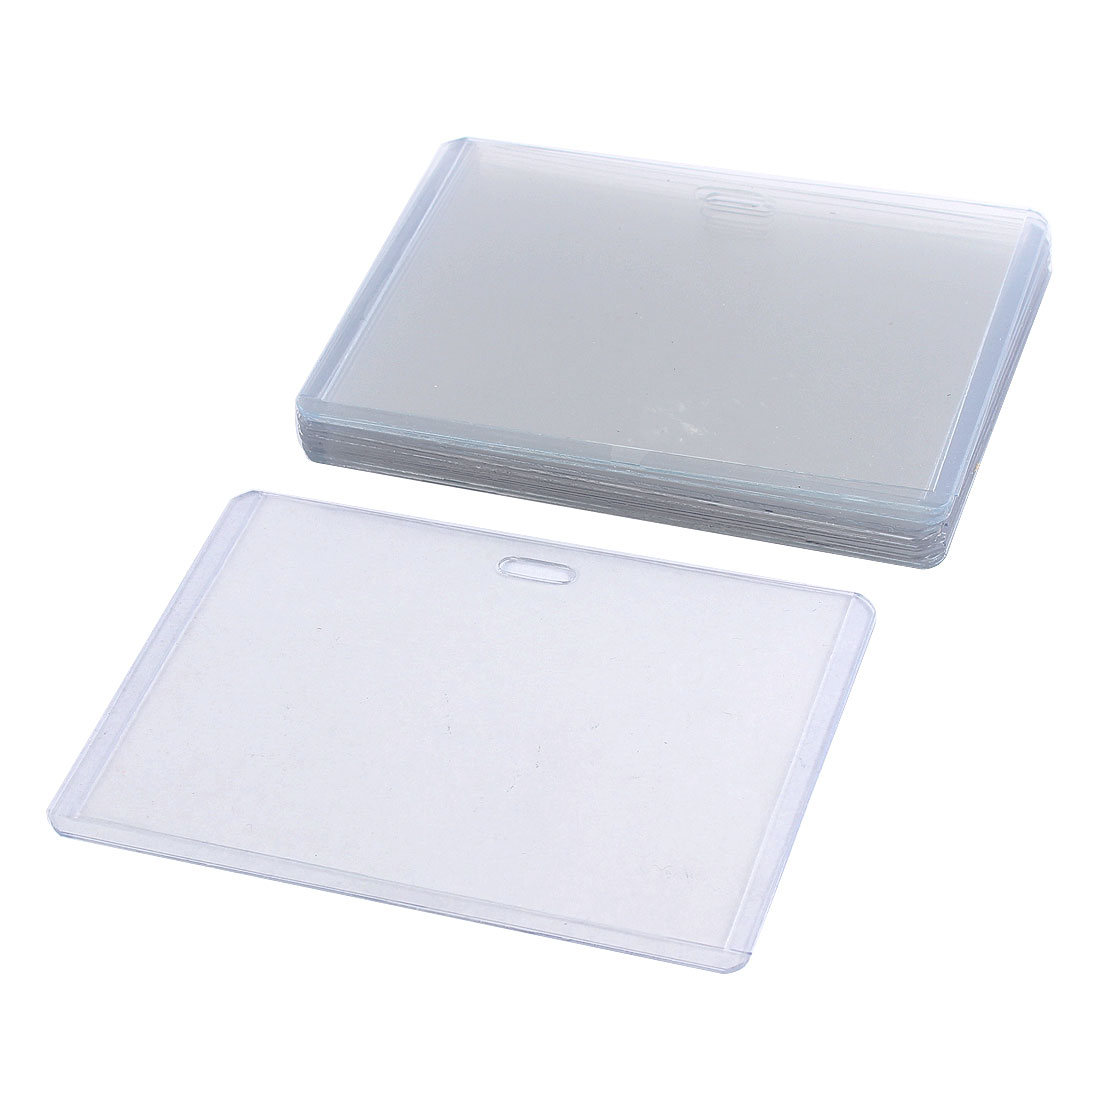 Plastic Horizontal Style ID Card Name Tag Business Badge Holder Case Clear 10pcs